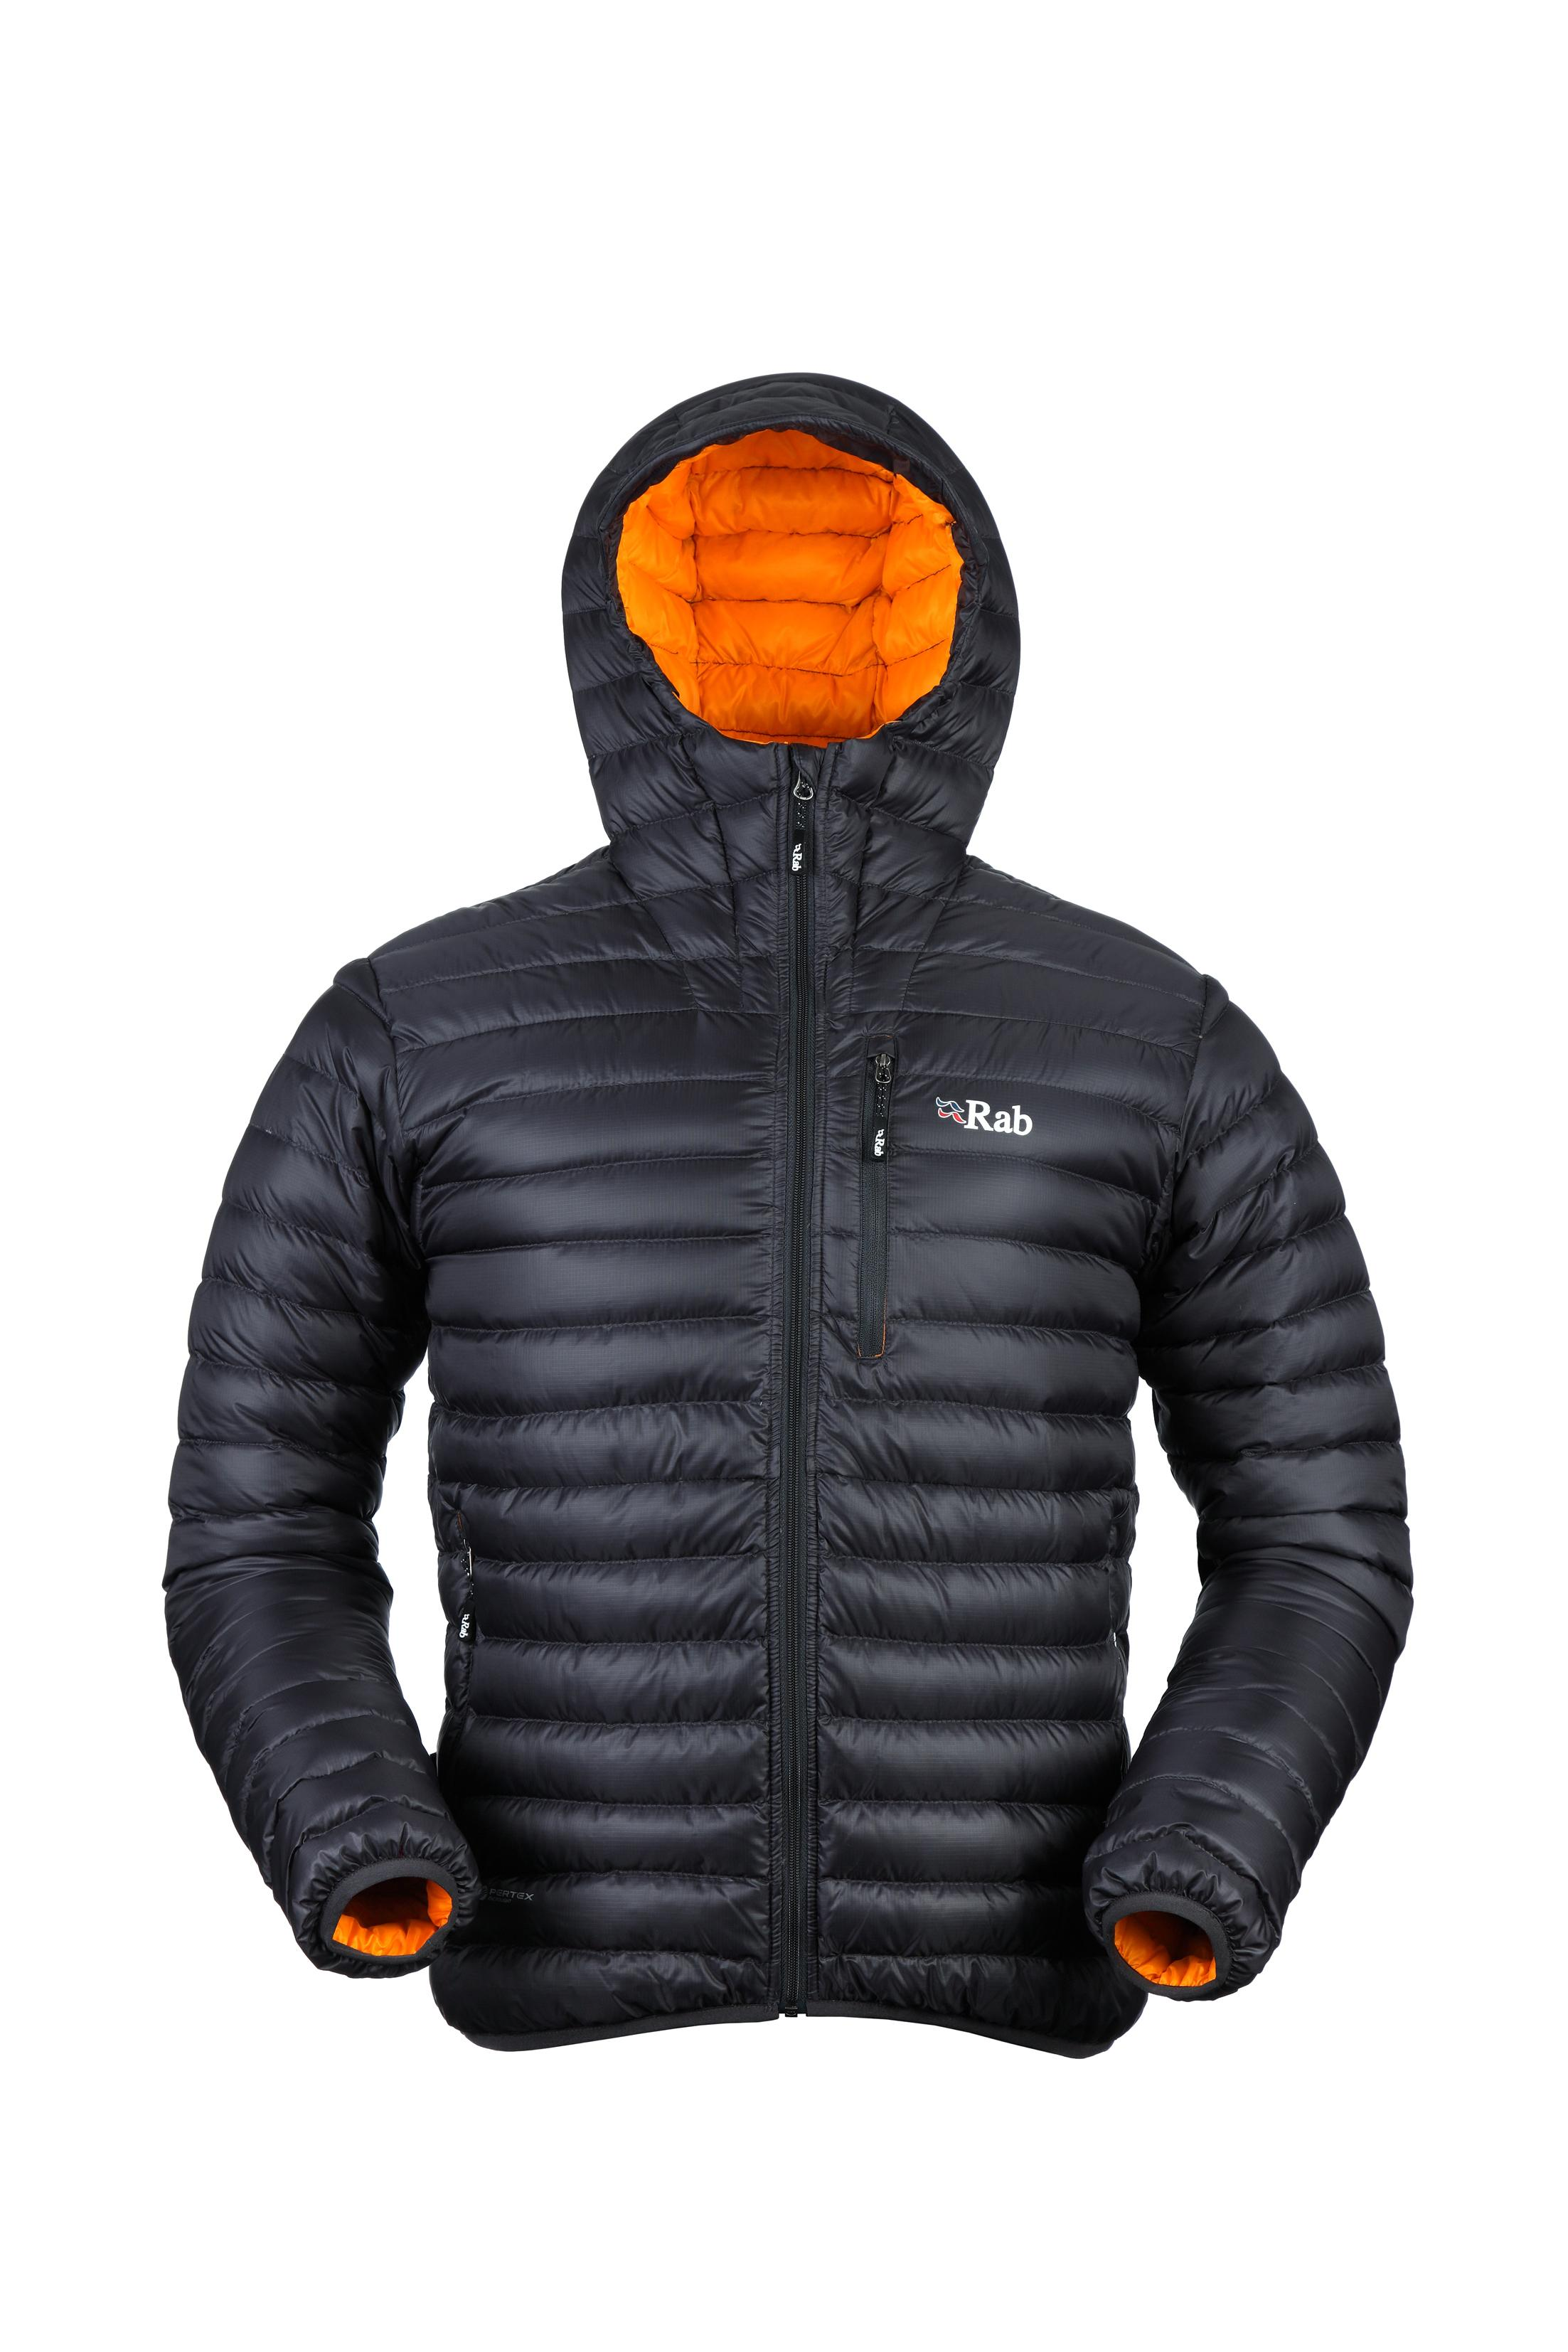 Rab Microlight Alpine Men's Down Jacket